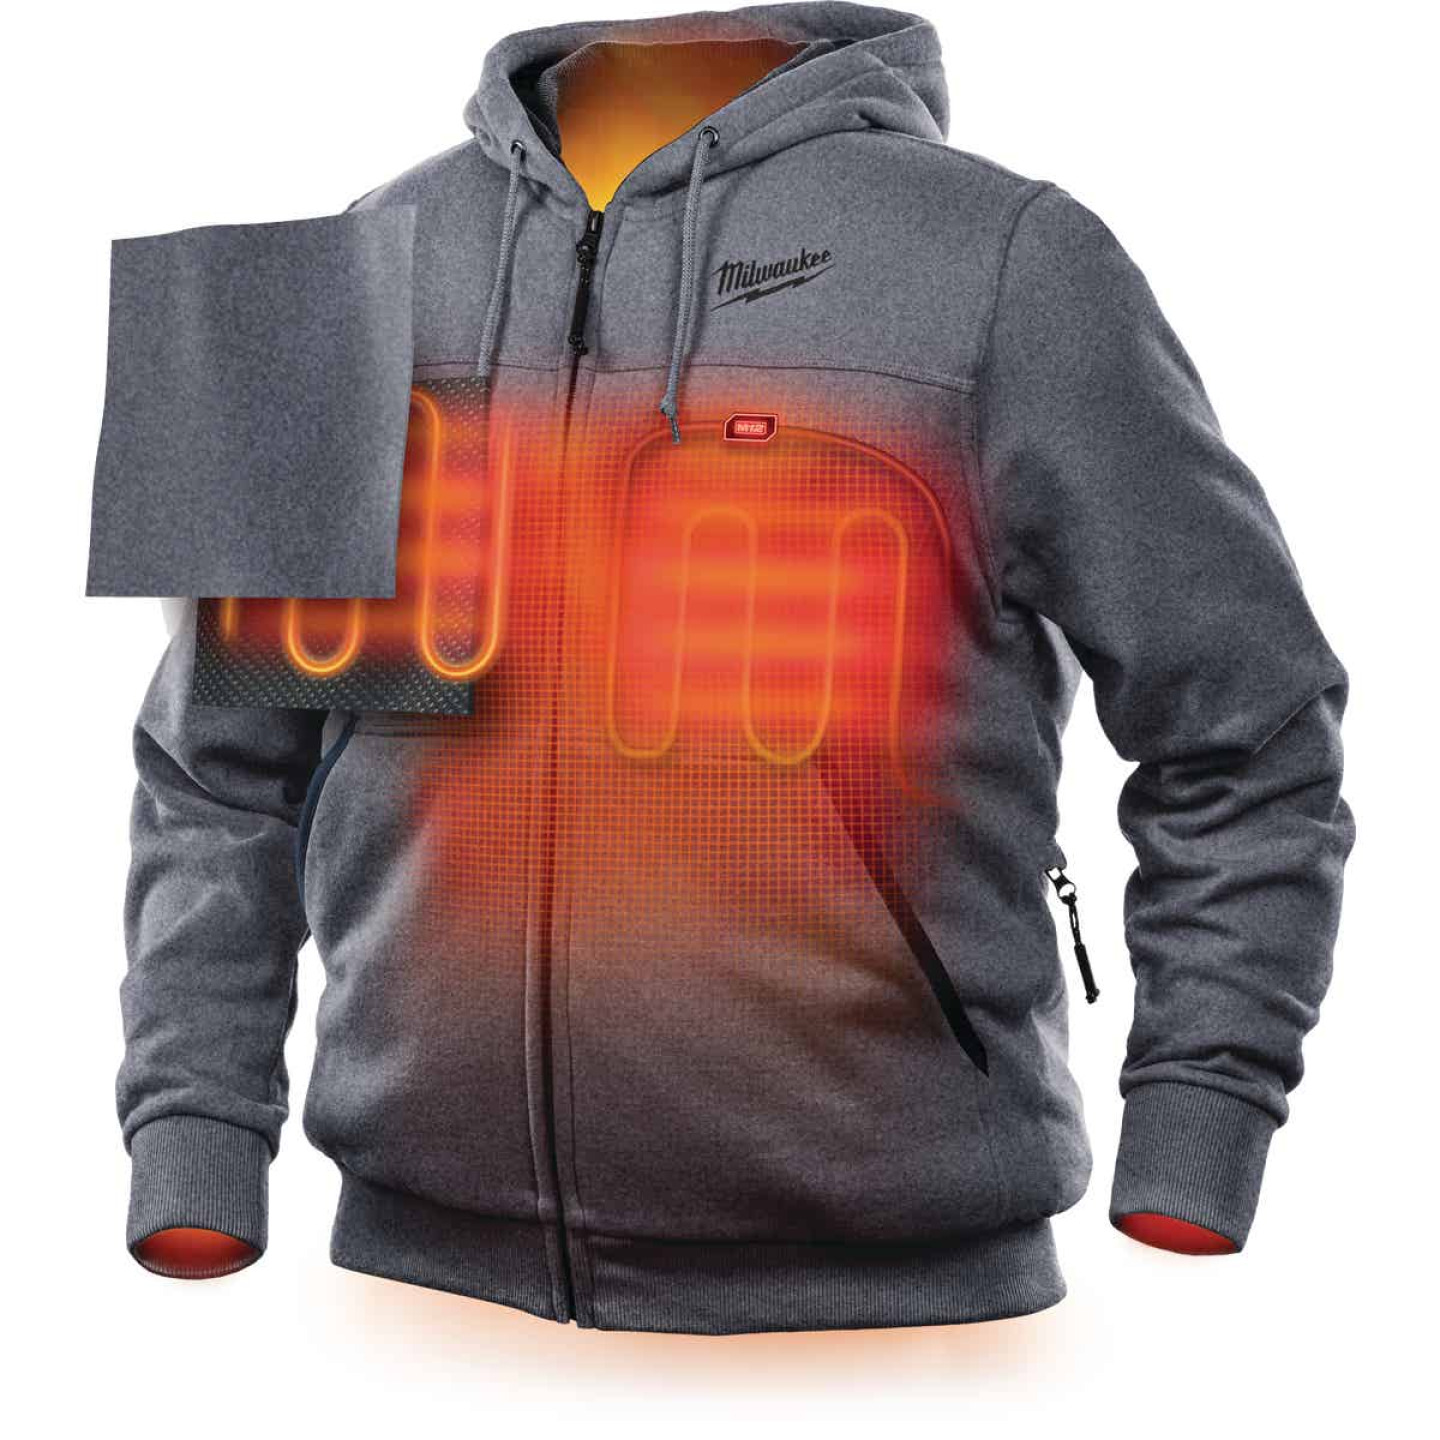 Milwaukee M12 XL Gray Men's Heated Full Zip Hooded Sweatshirt Image 6